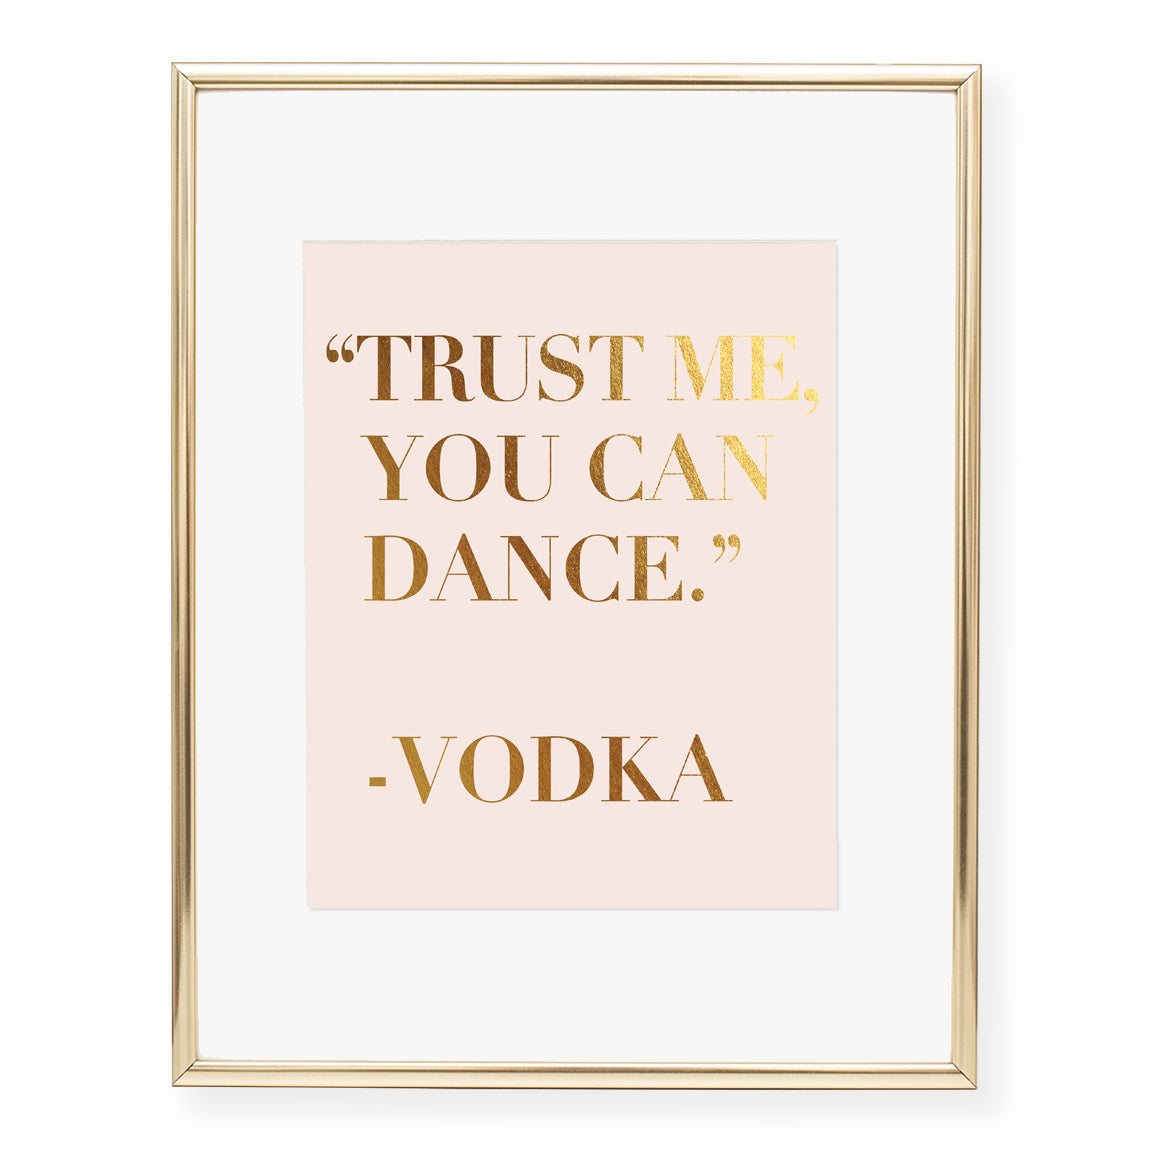 Vodka Quote Foil Art Print